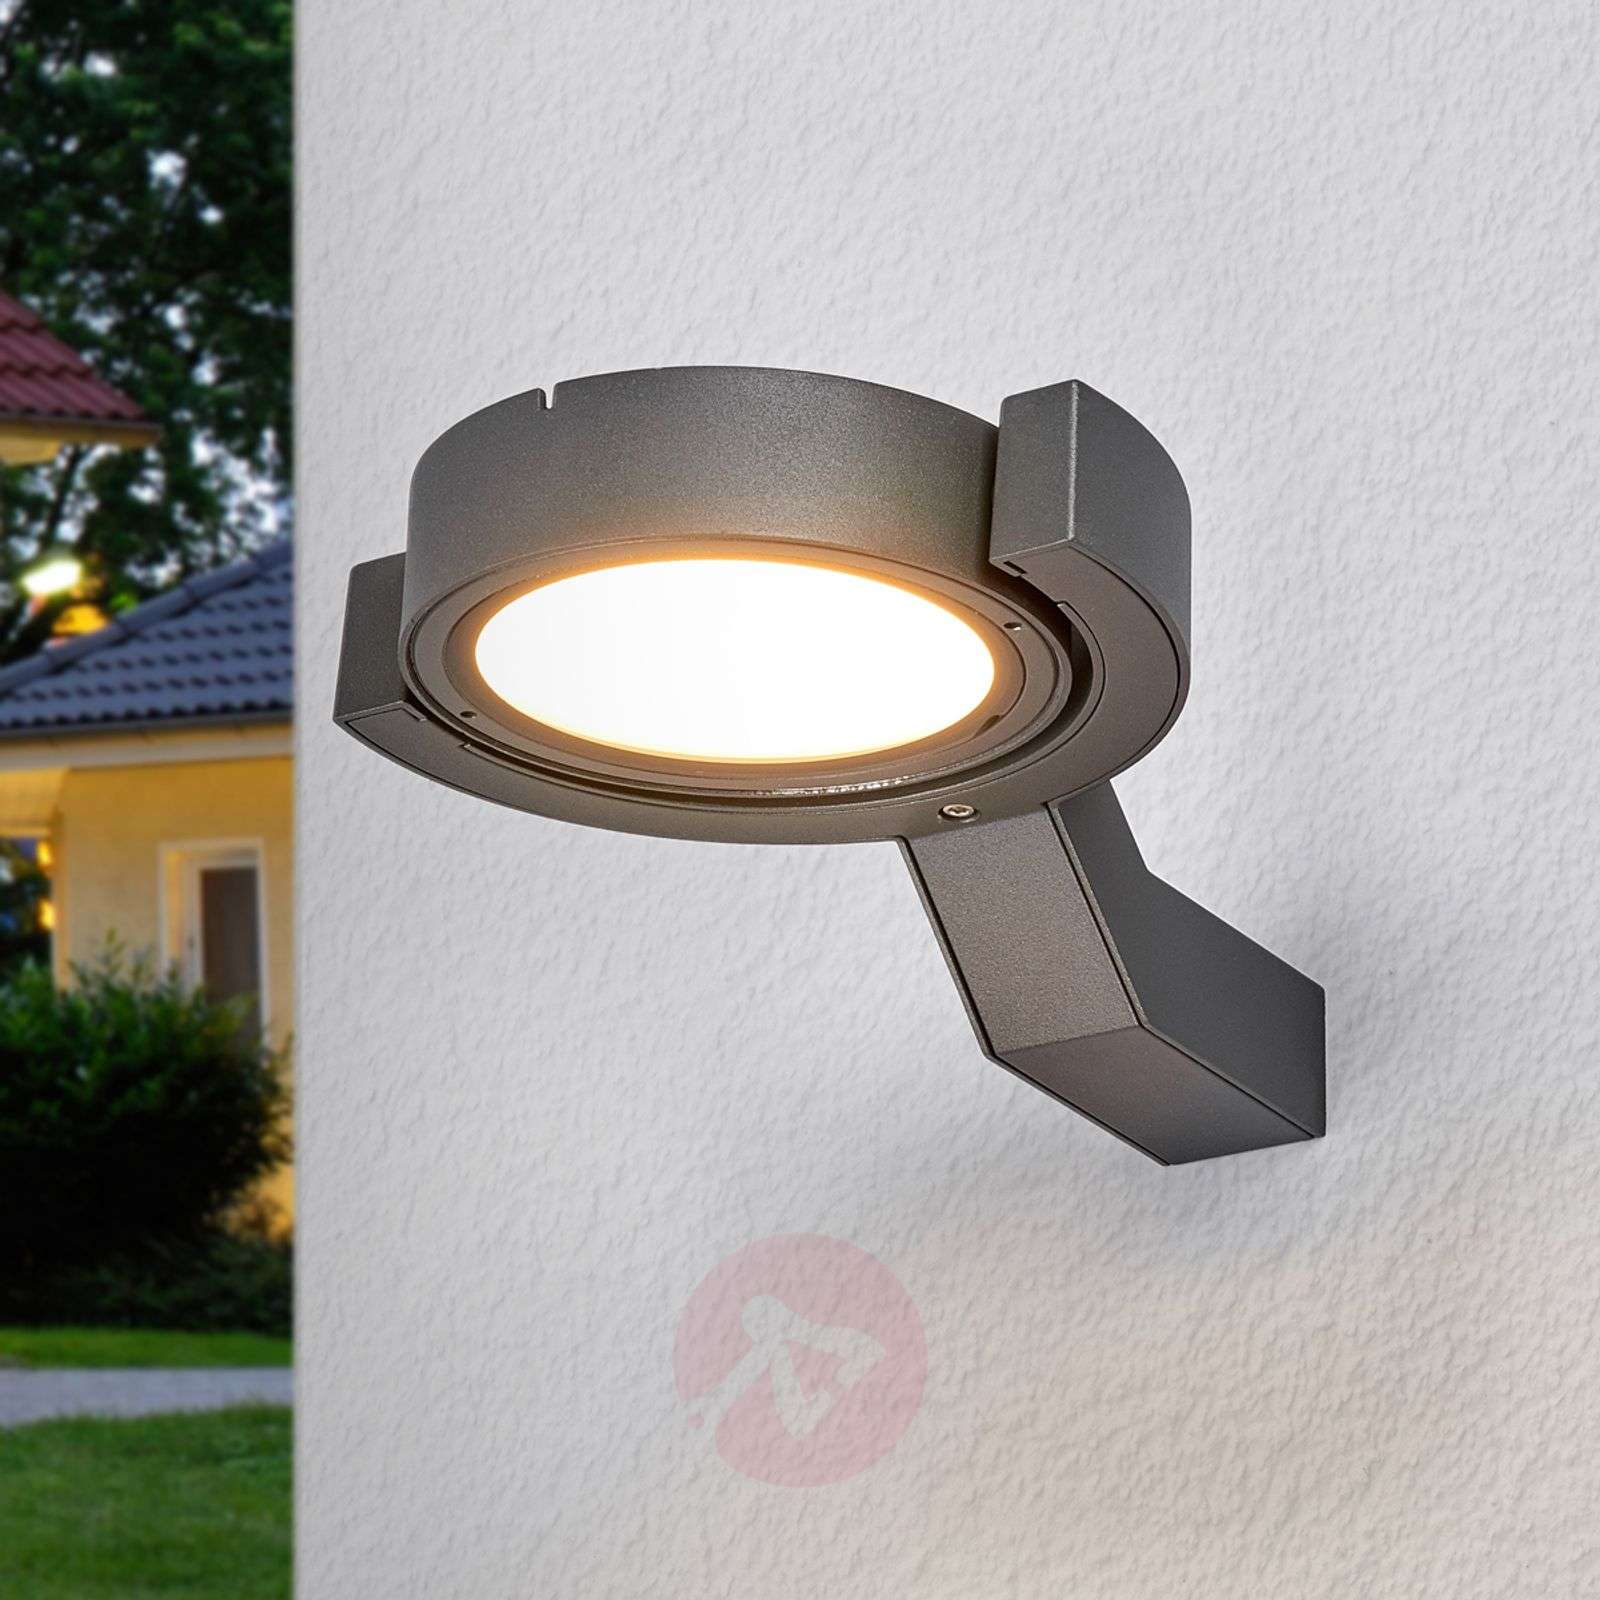 Isita adjustable led outdoor wall light for Eclairage mural exterieur